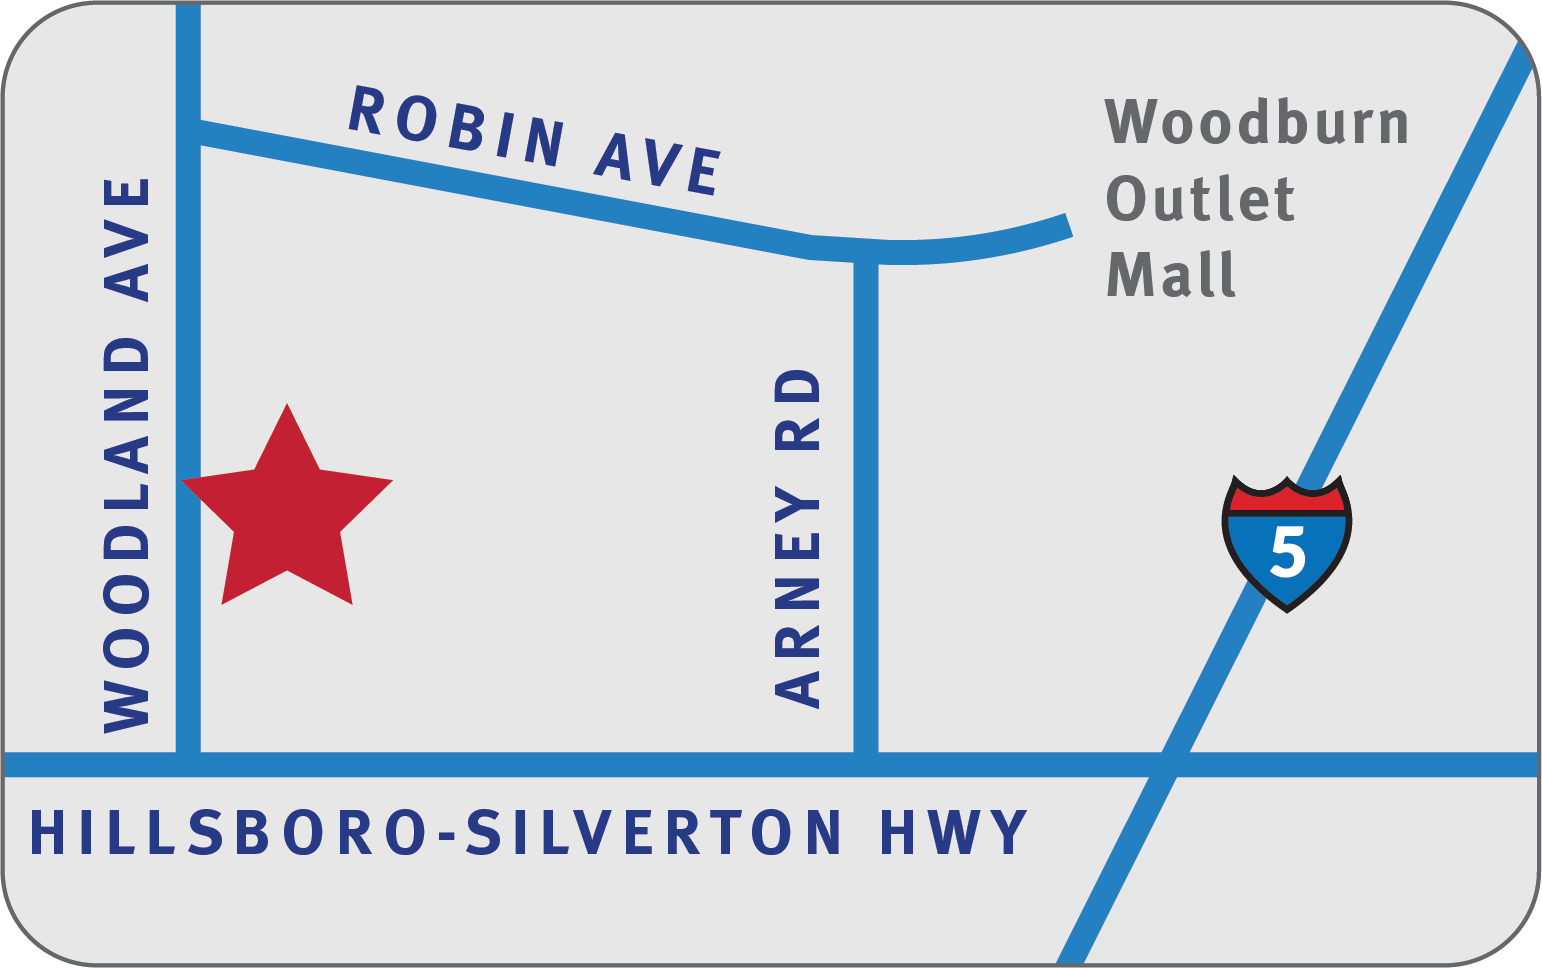 Simple line drawing of Woodburn clinic location.